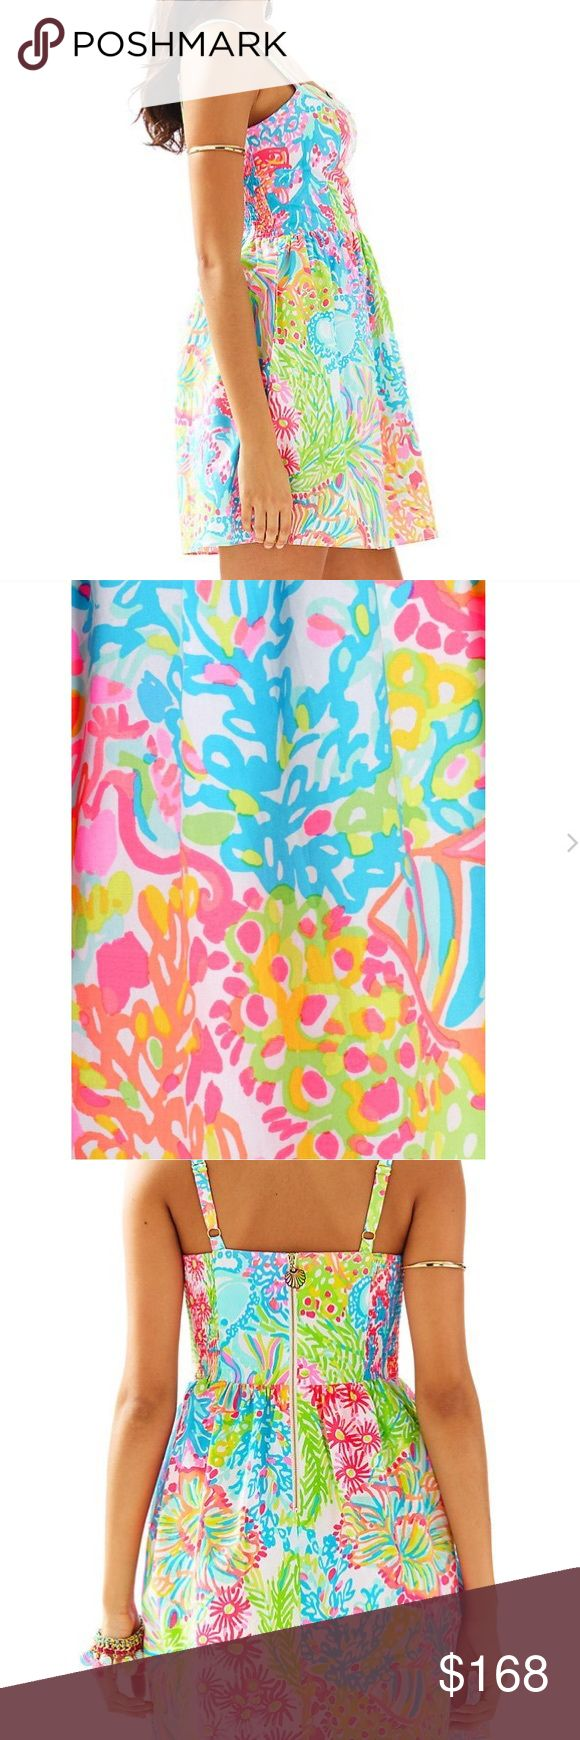 "💚 Lilly Pulitzer Ardleigh fit/flare dress sz10 Lilly Pulitzer Ardleigh fit and flare dress sz10  originally $178 bought ""in the pink"" store on Nantucket Island Lilly Pulitzer Dresses Mini"